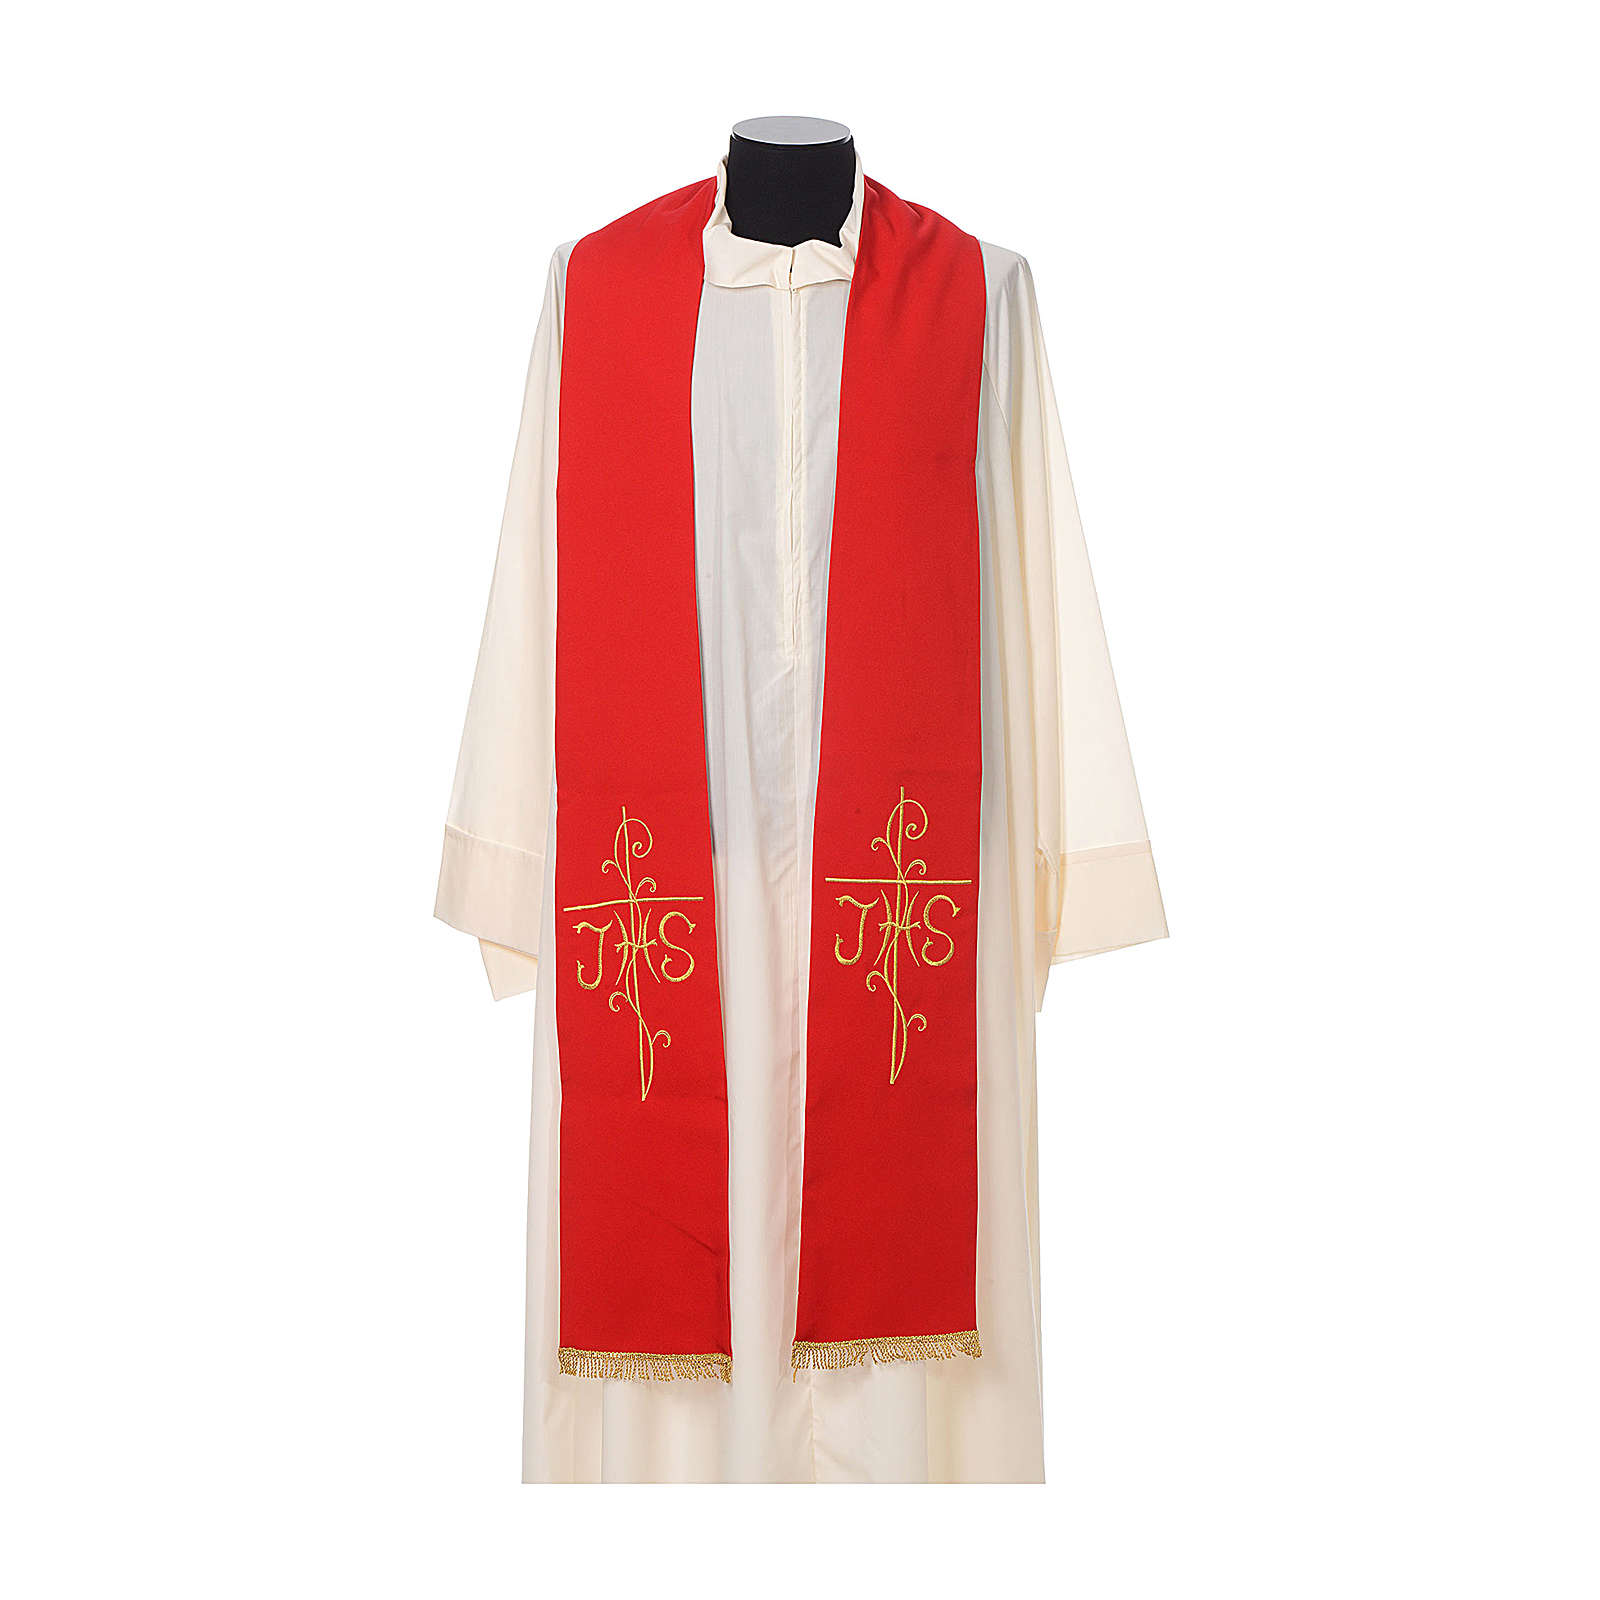 Priest Stole golden Cross JHS embroidery polyester 4